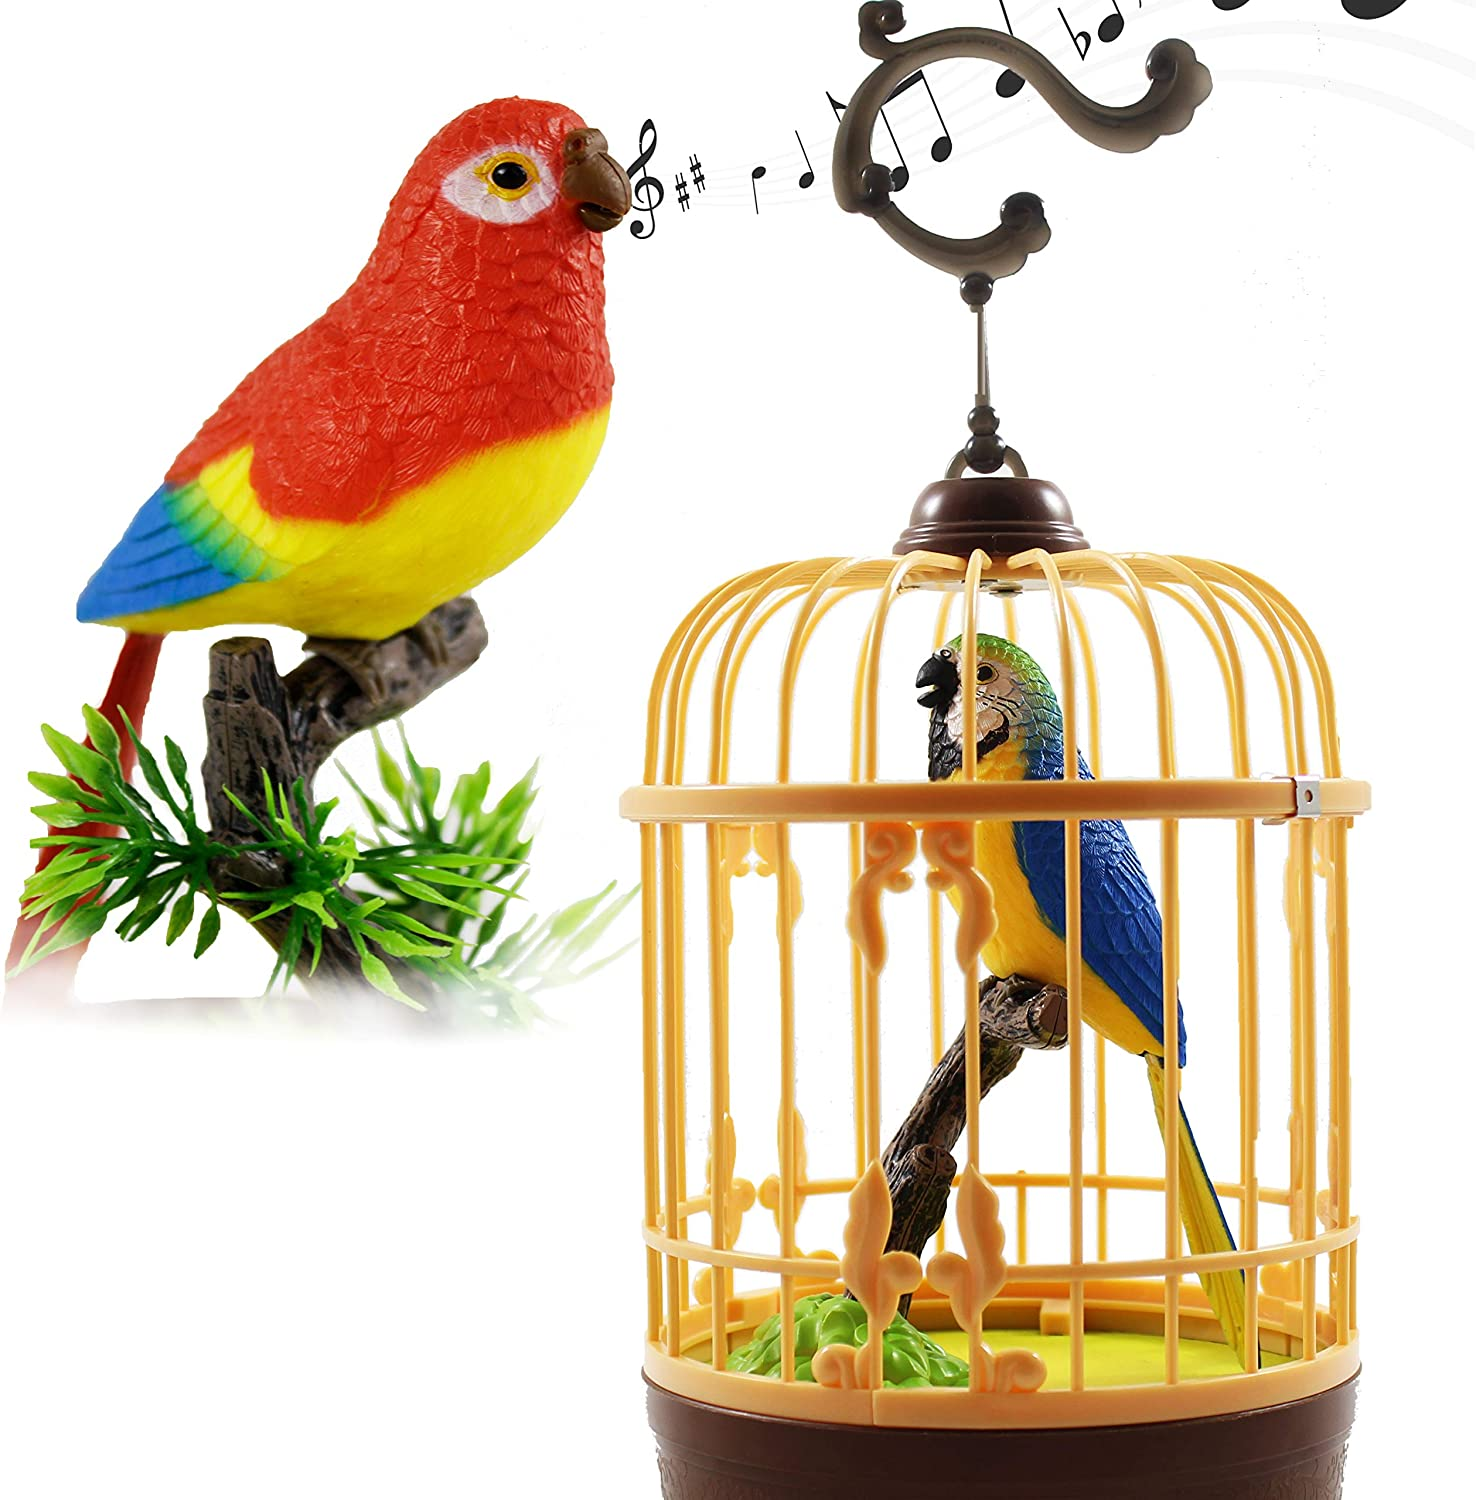 Haktoys Singing & Chirping Bird in a Cage, Moving Beak and Tail | Sound Activated and Battery Operated Realistic Parakeet on a Tree Branch - Colors May Vary | Great Desk and Room Accessory